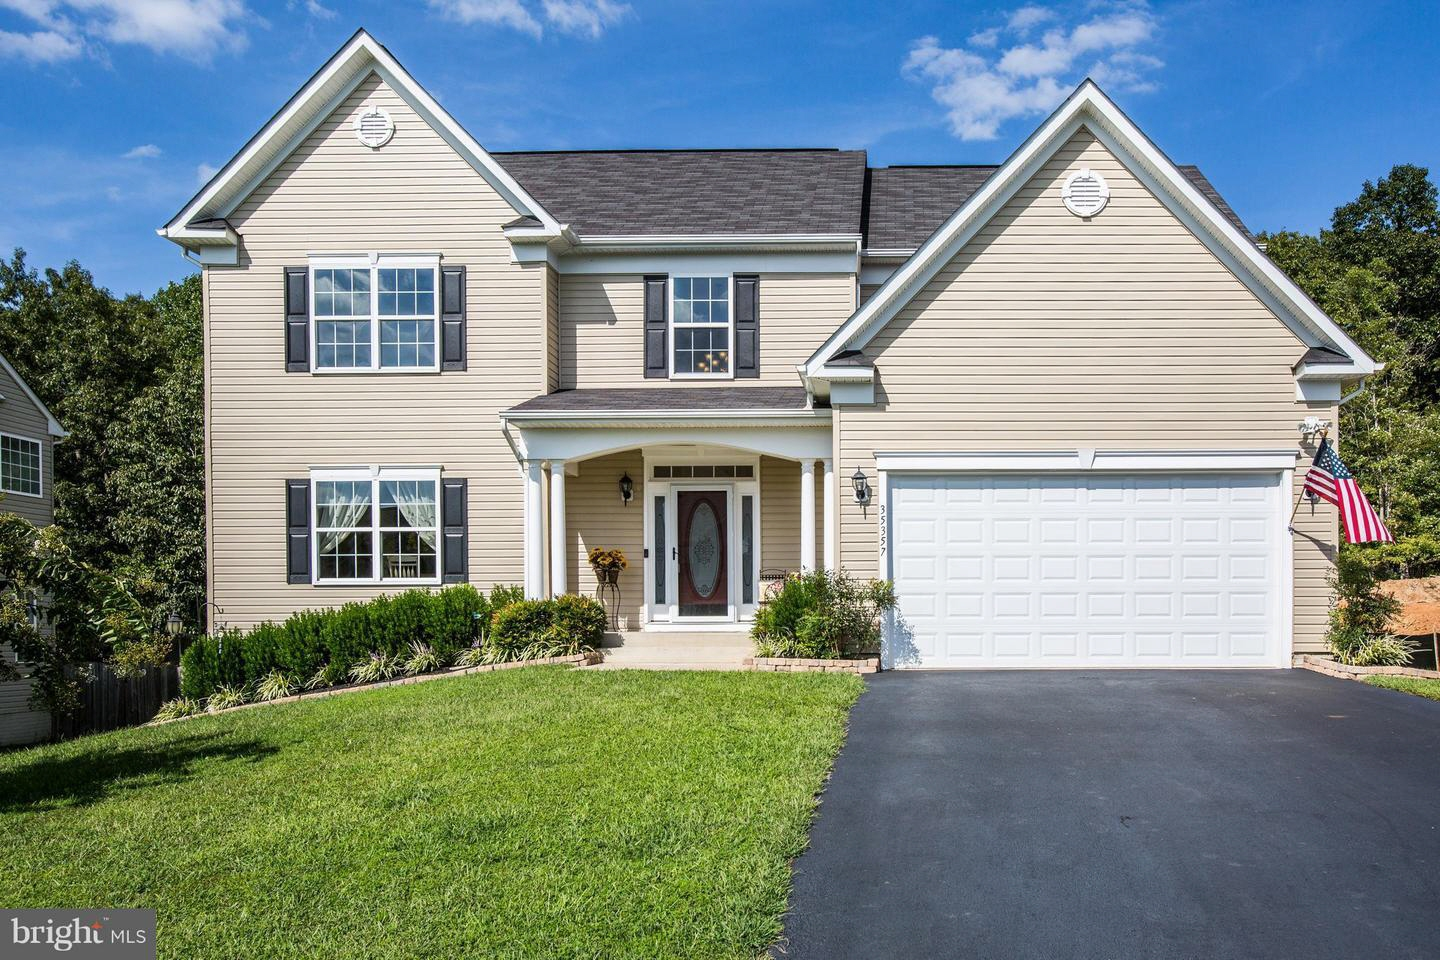 35357 Riverbend Dr, Locust Grove, VA, 22508 United States